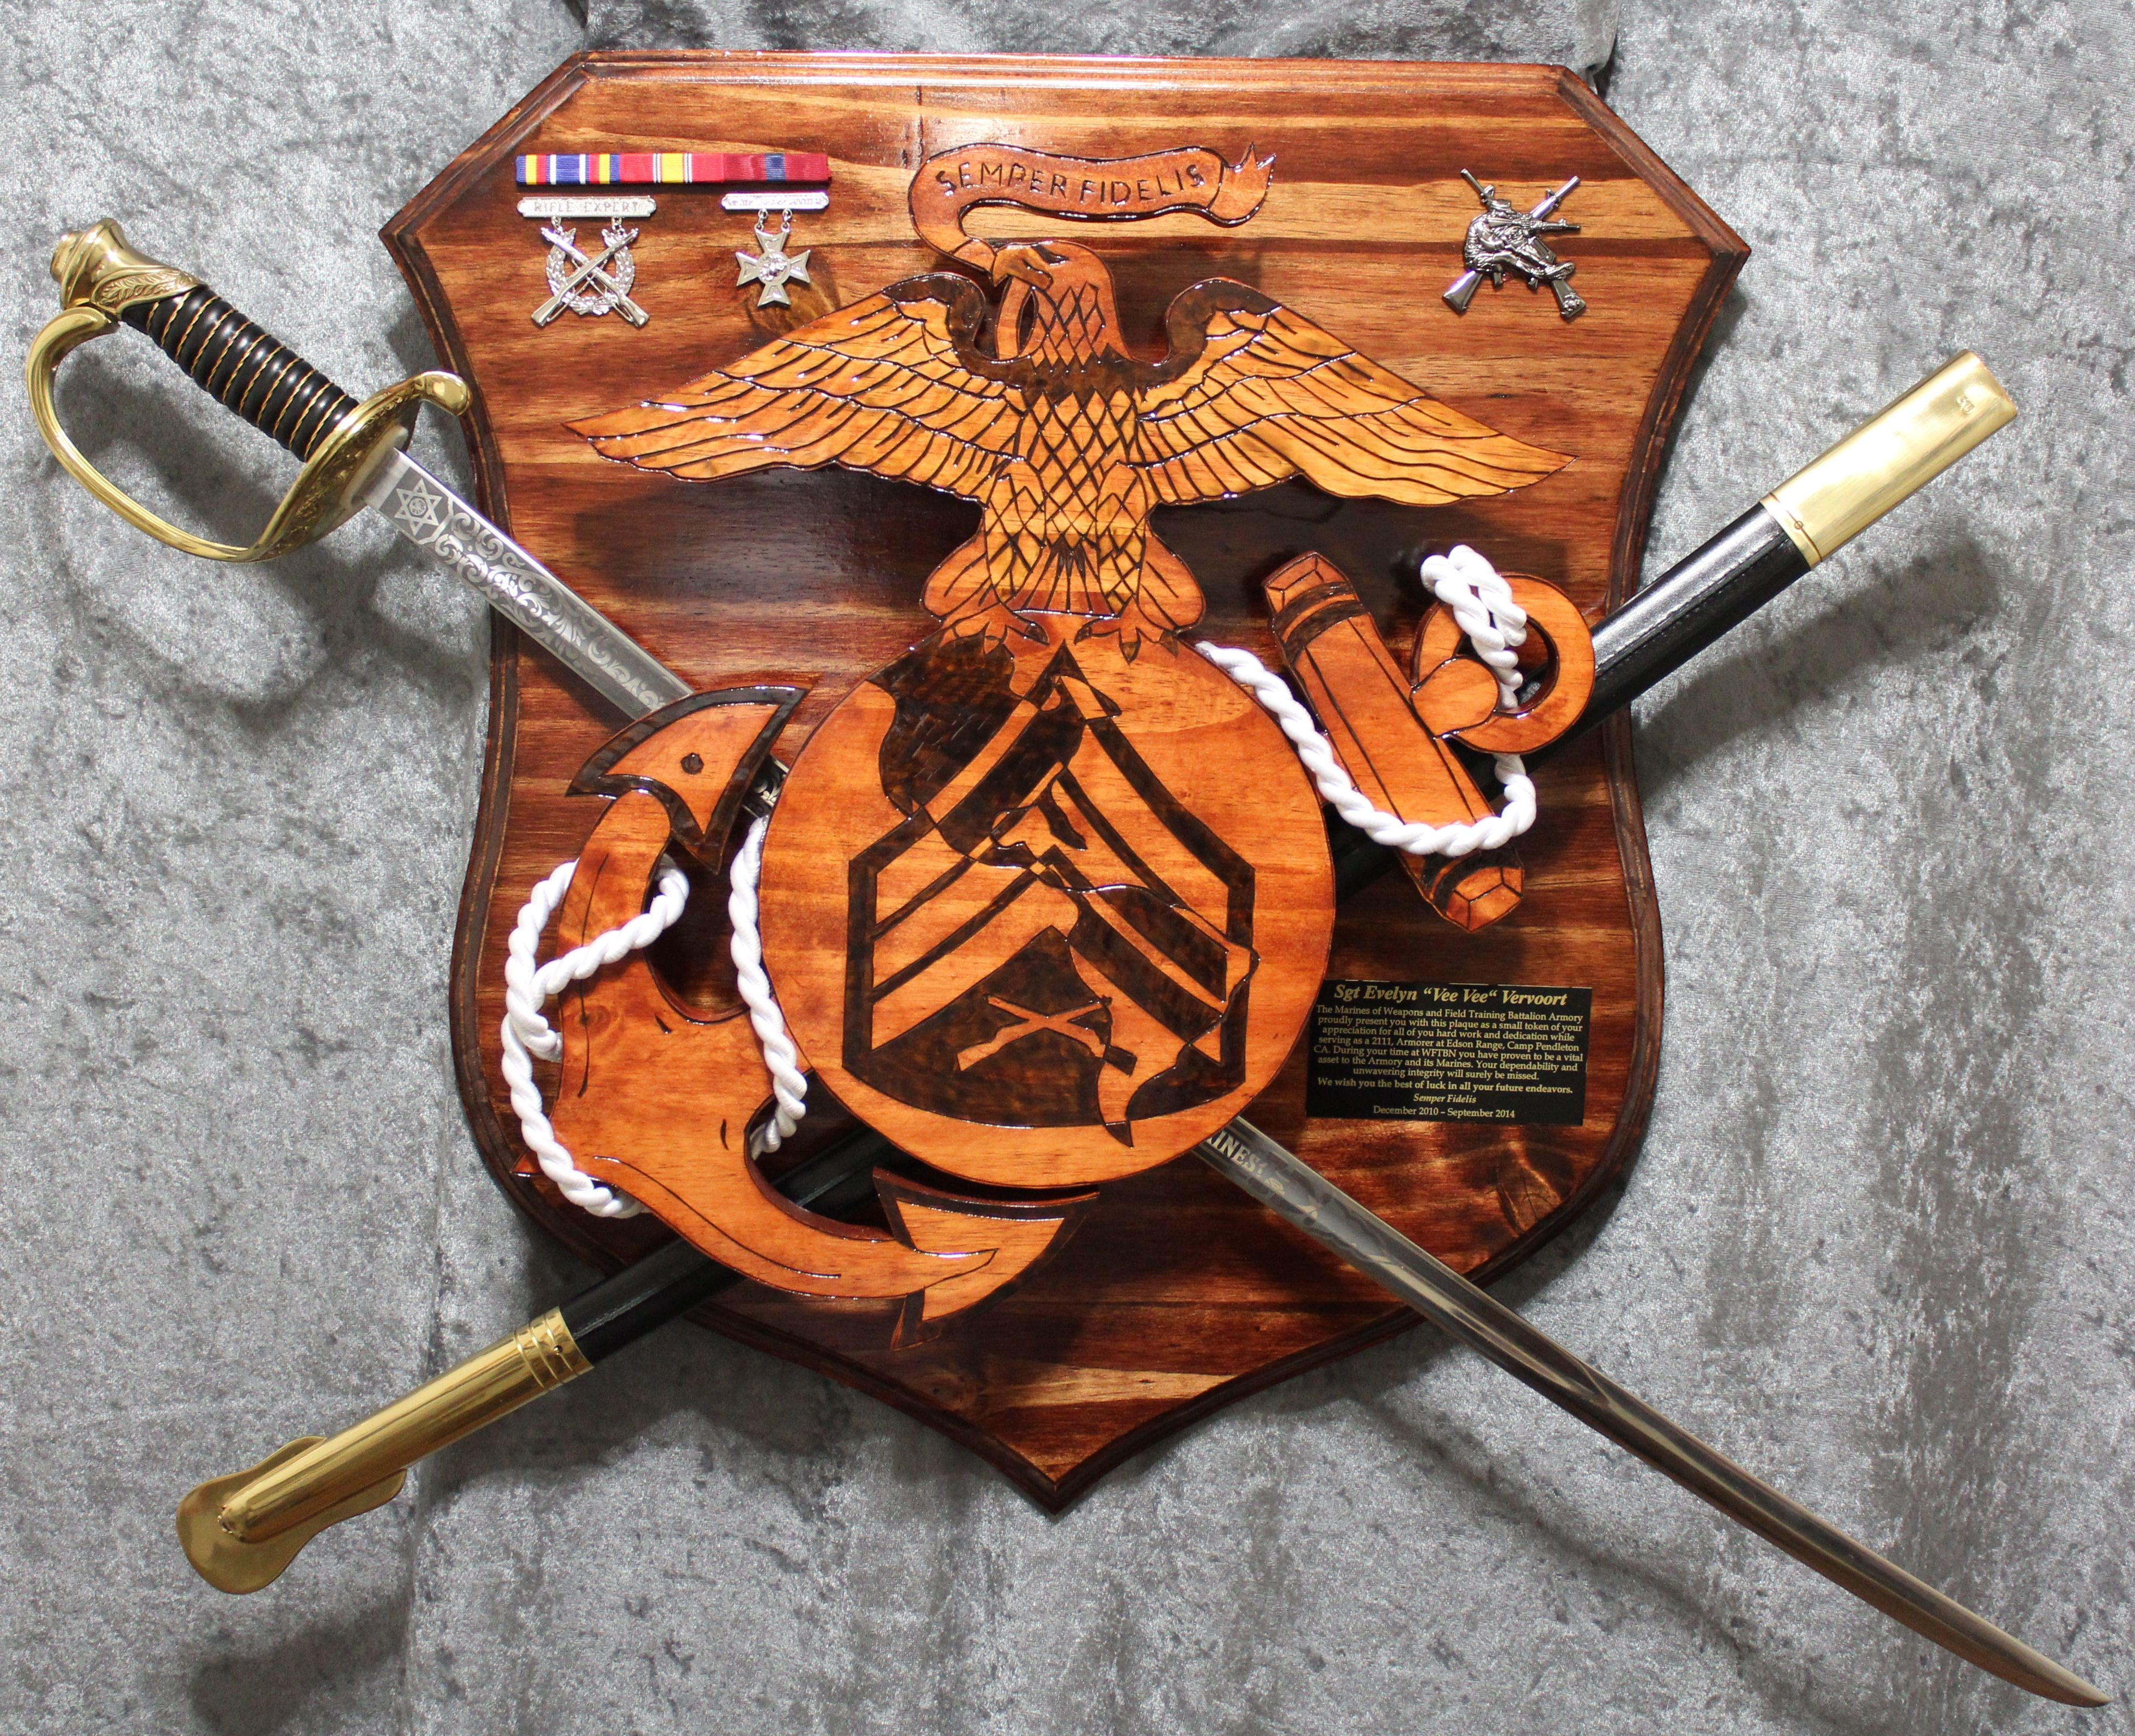 Sword Wall Plaques Usmc Plaque Questions On Design Or Price Contact